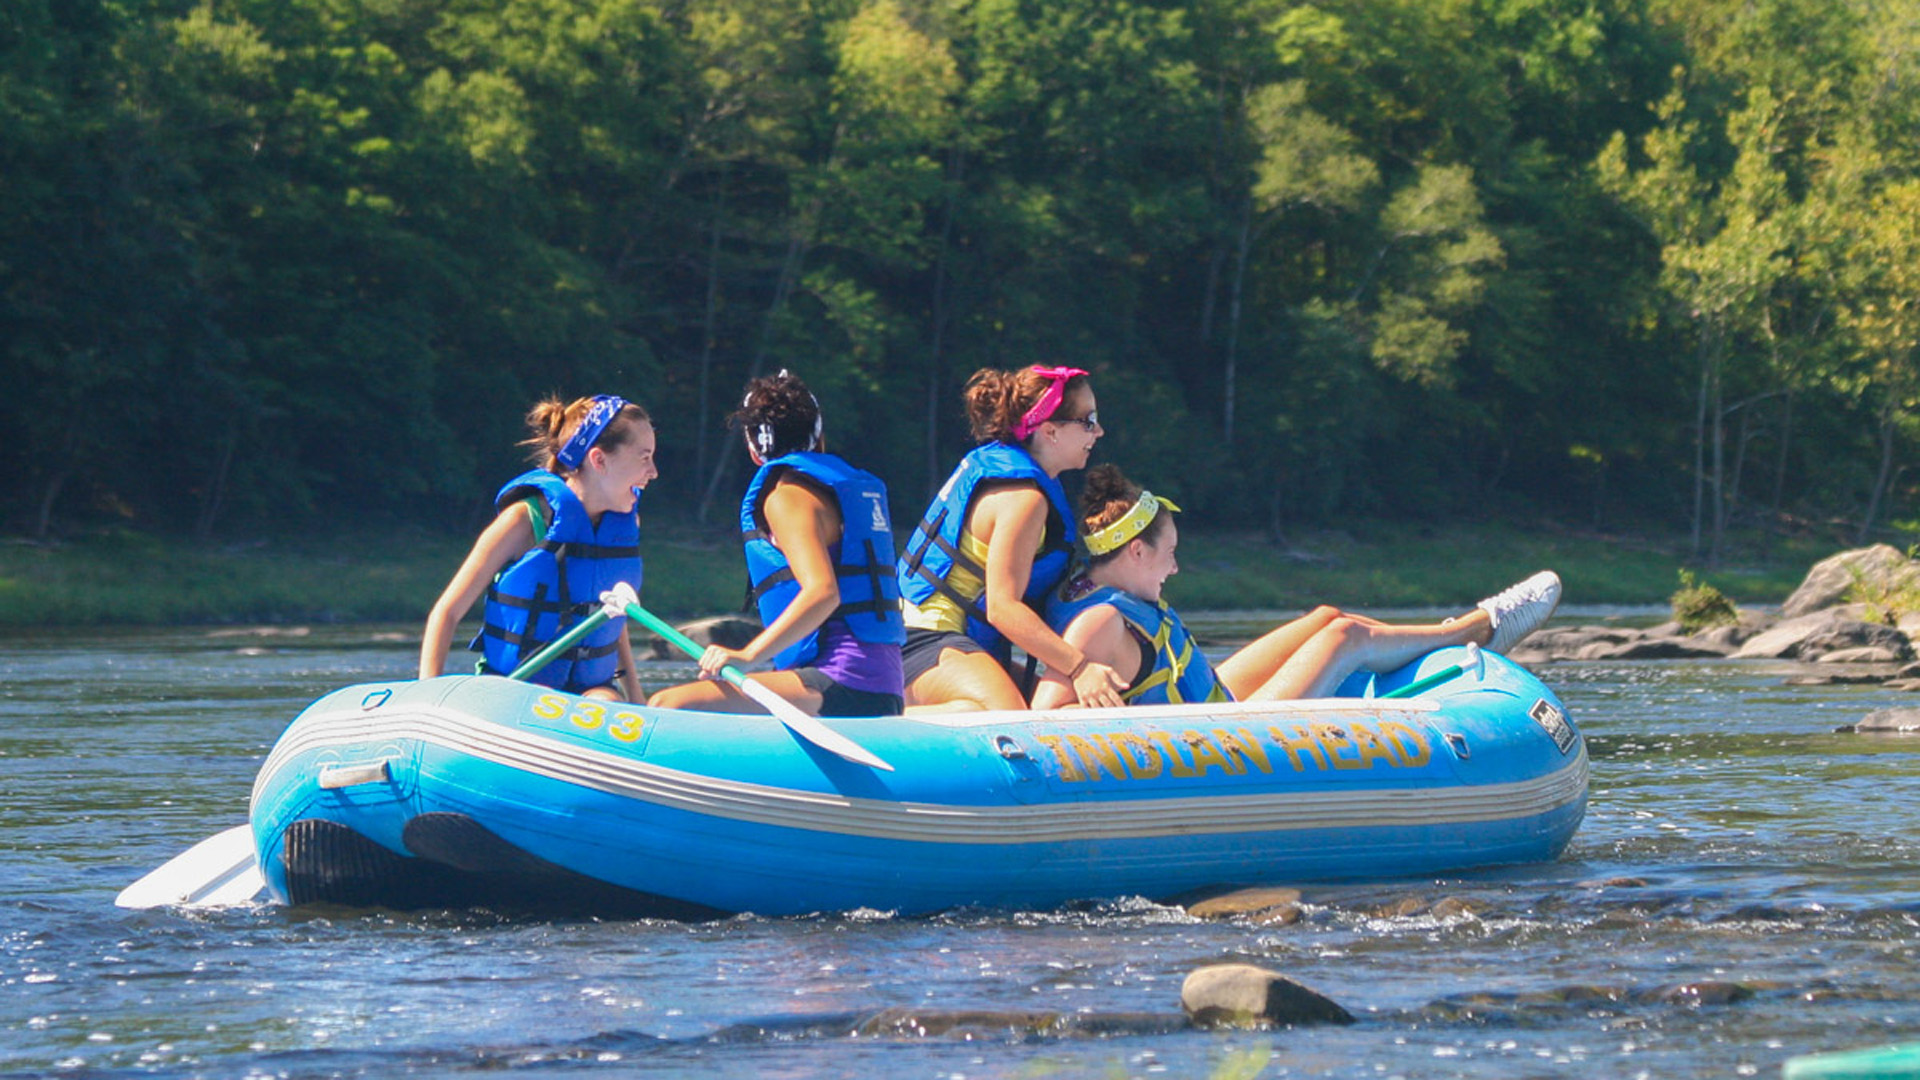 having fun during calm water raft adventure Indian Head Canoeing Rafting Kayaking Tubing Delaware River